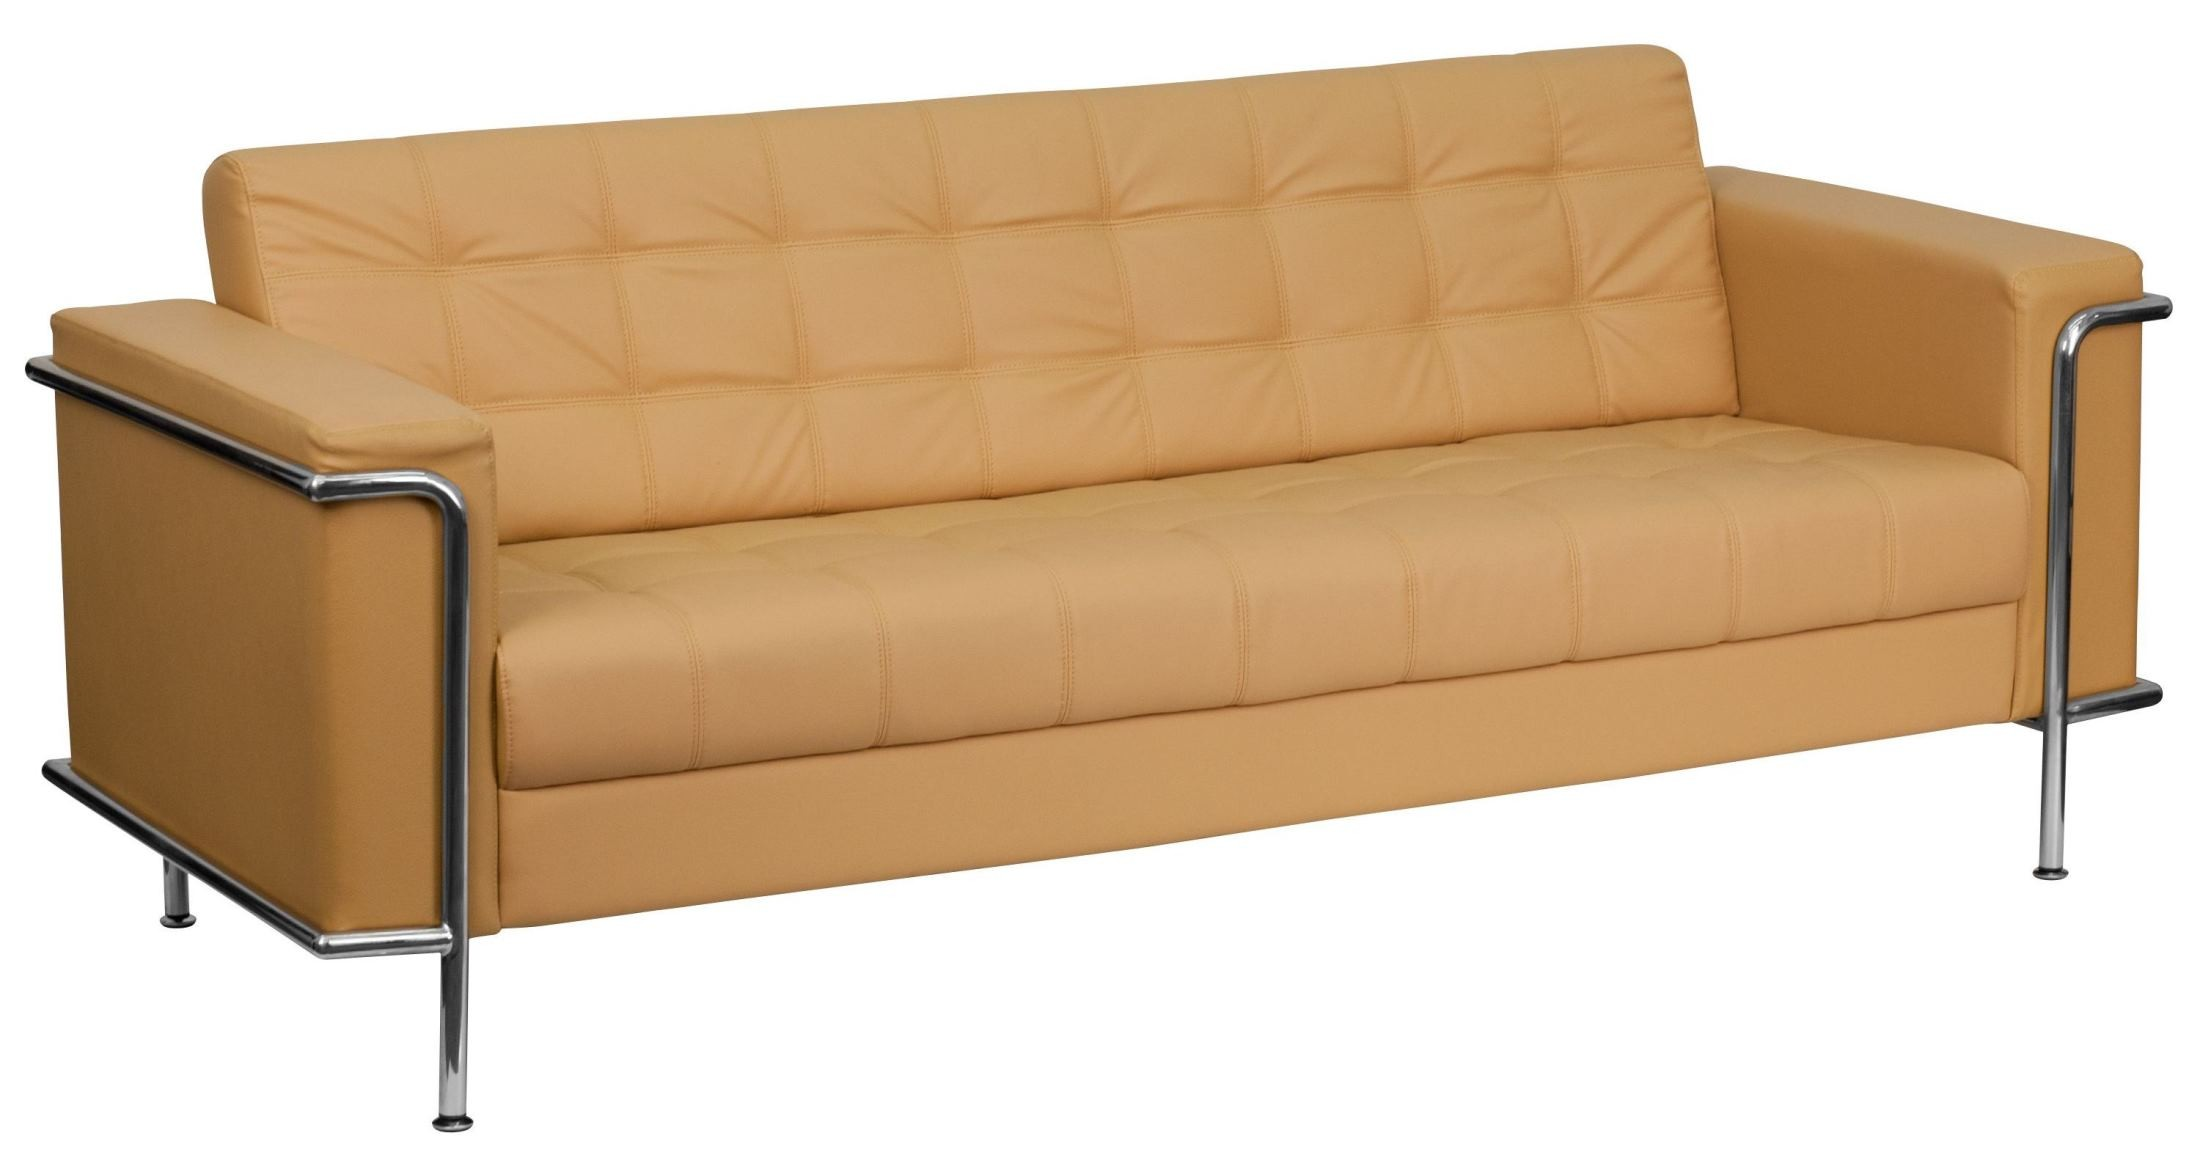 series light brown leather sofa from renegade coleman furniture